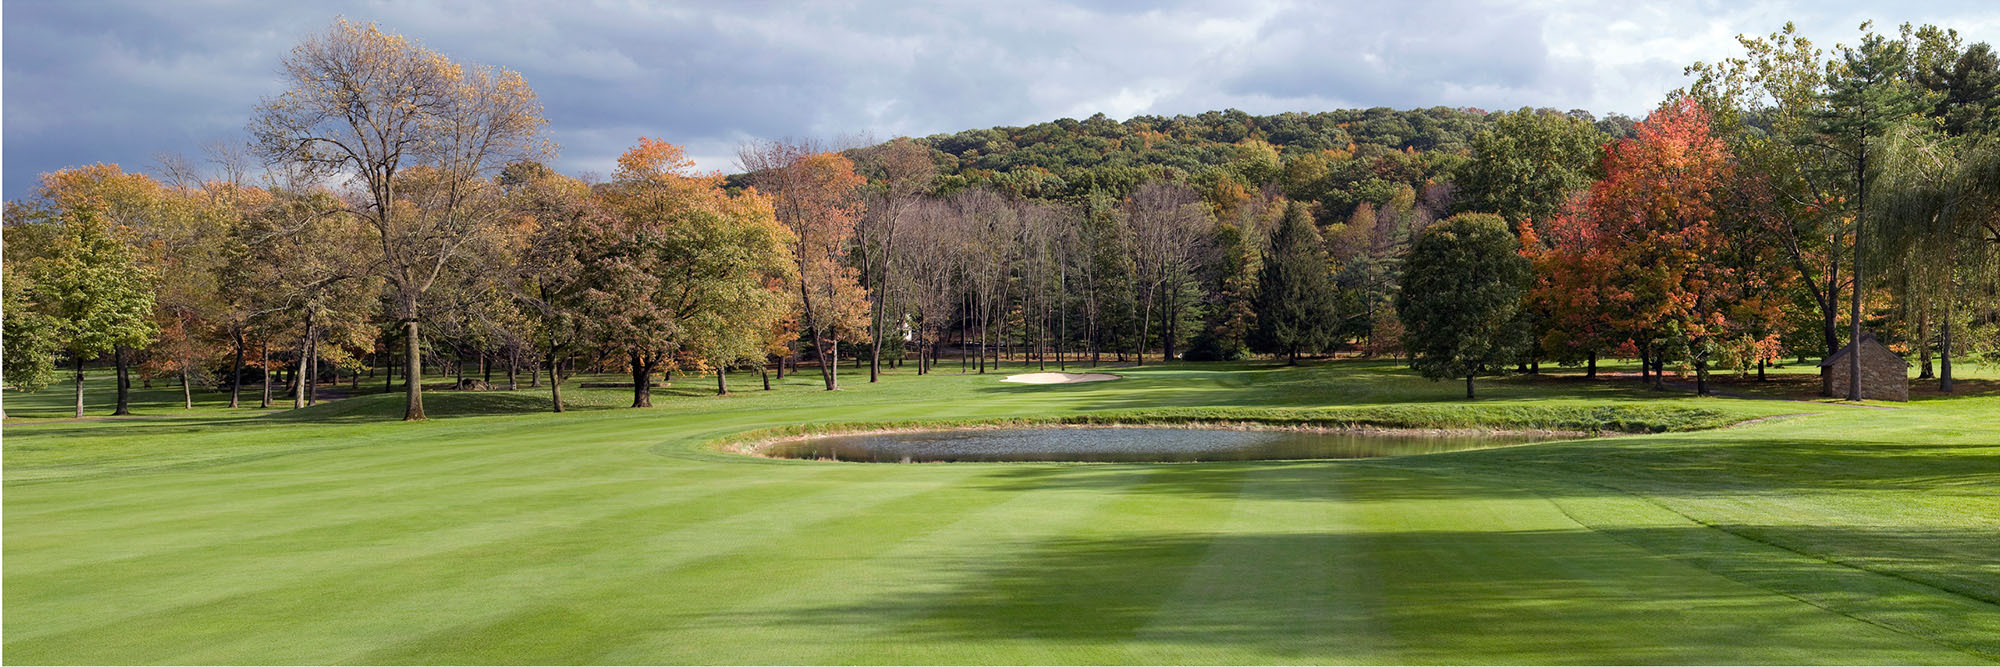 Golf Course Image - Saucon Valley Grace No. 8